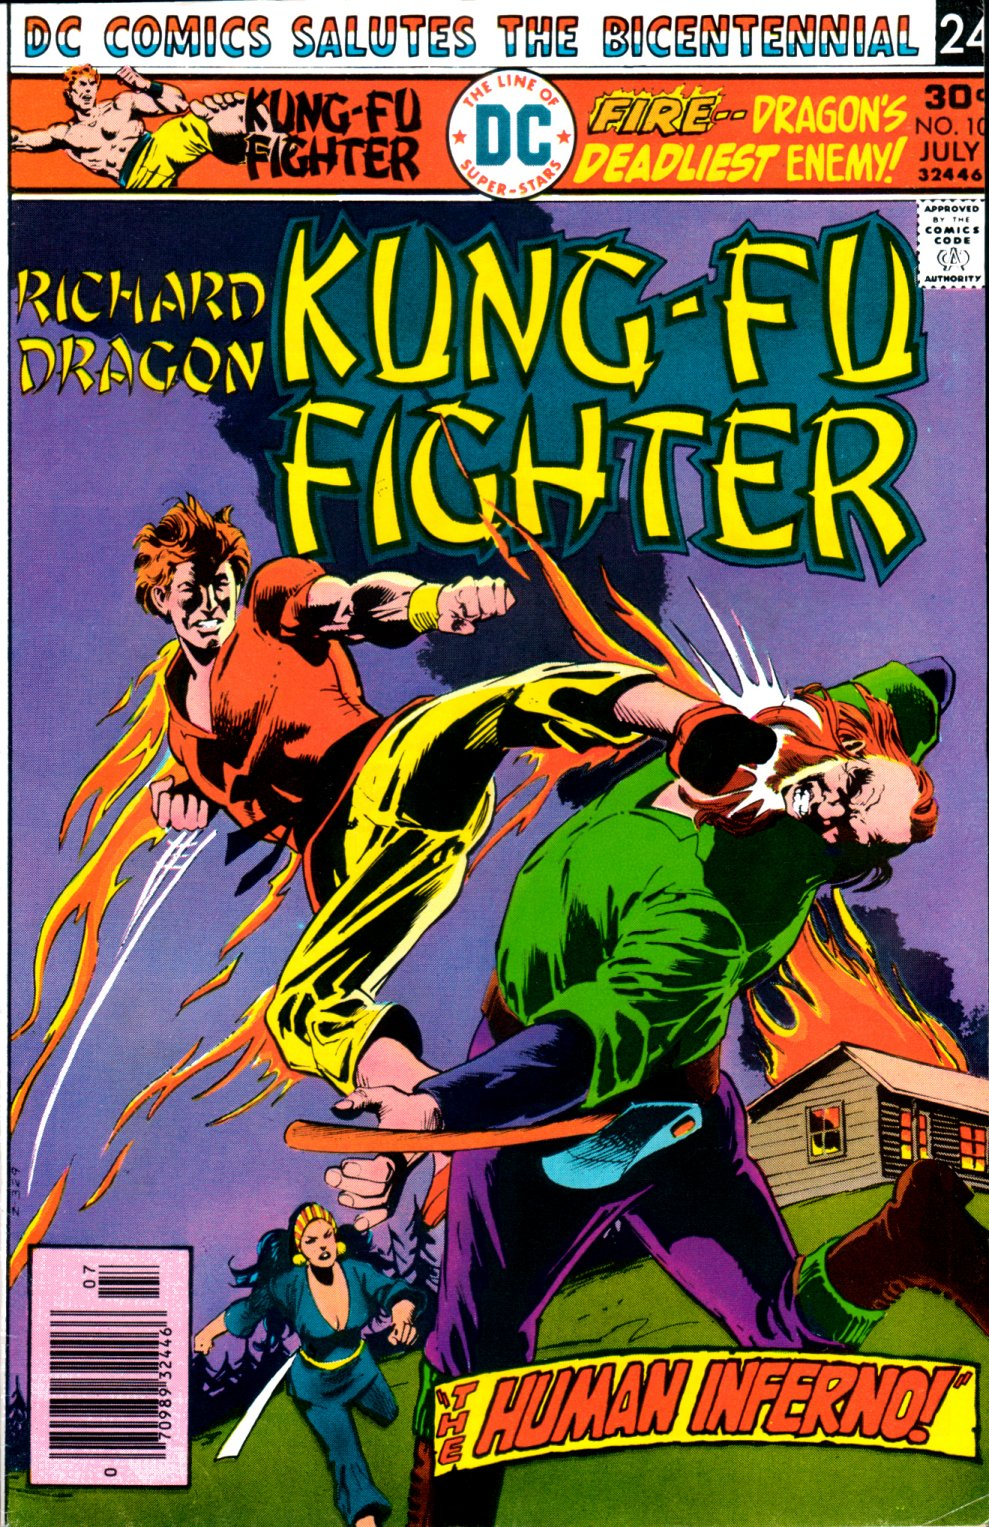 Richard Dragon, Kung-Fu Fighter issue 10 - Page 1